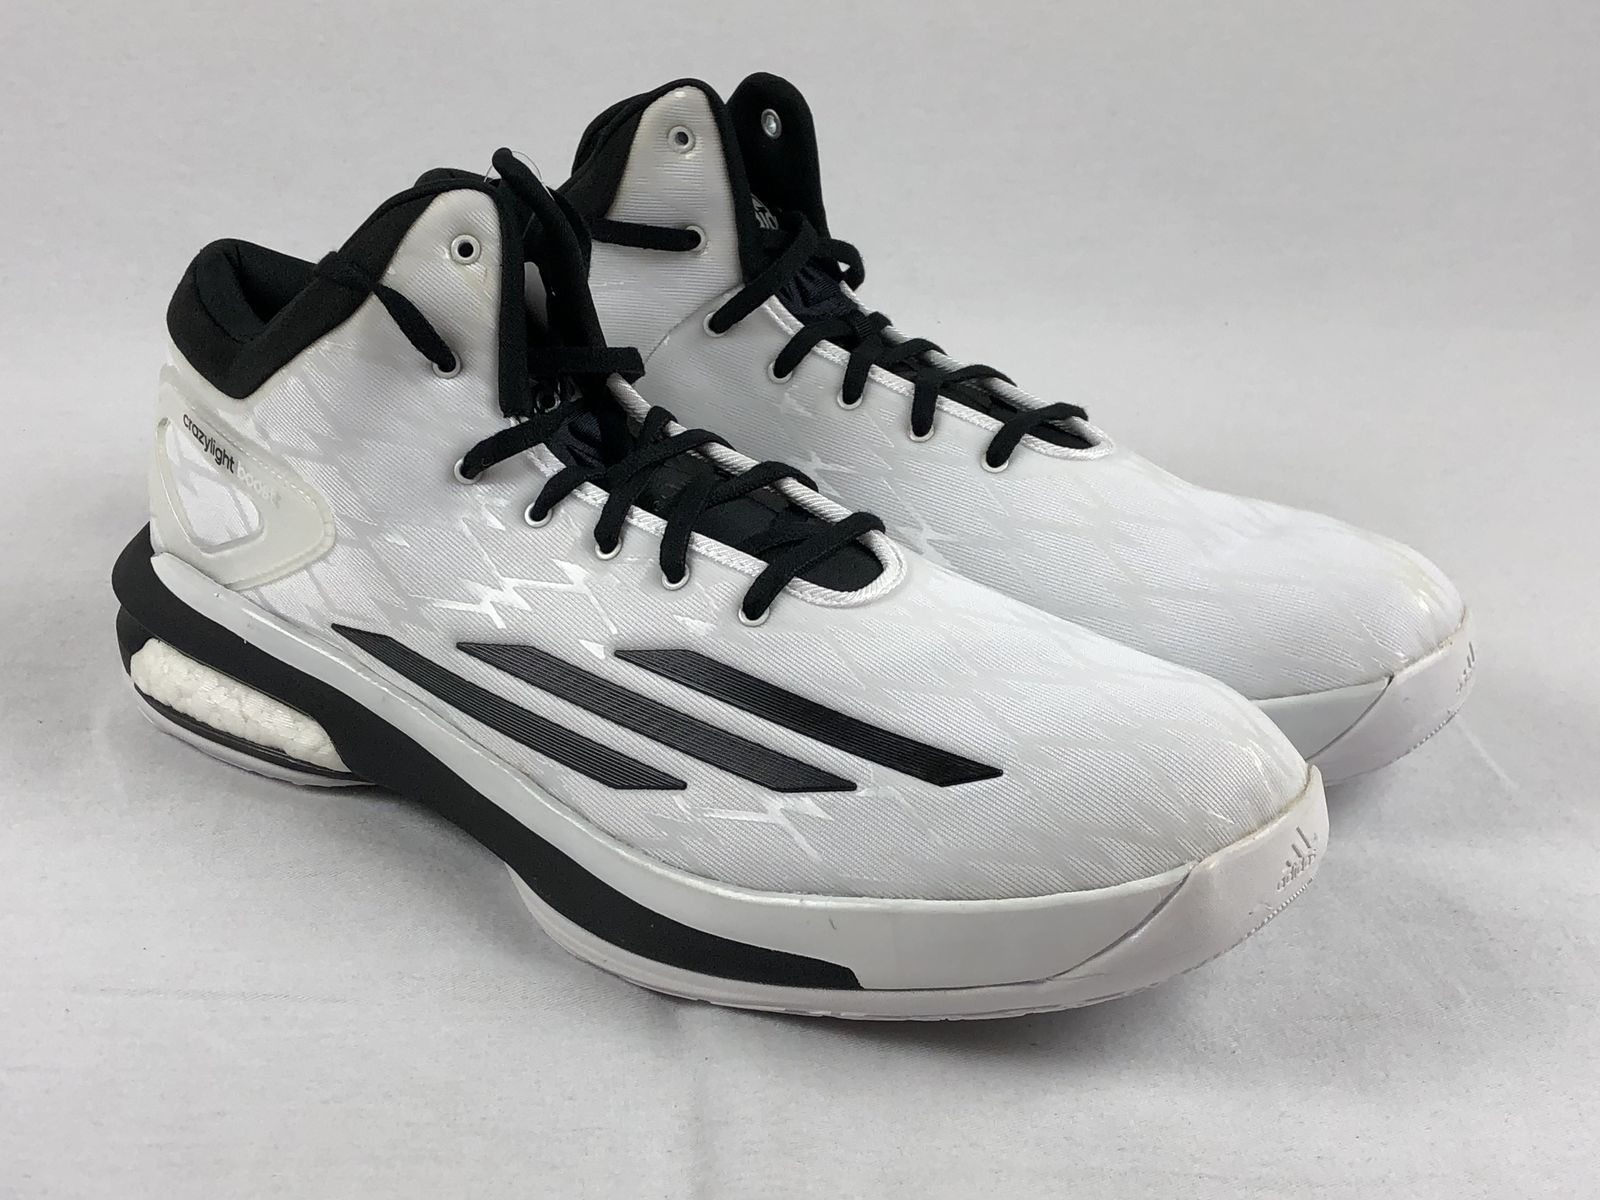 new style ce1d3 256ea Details about NEW adidas Crazylight Boost - White Basketball Shoes (Mens  Multiple Sizes)